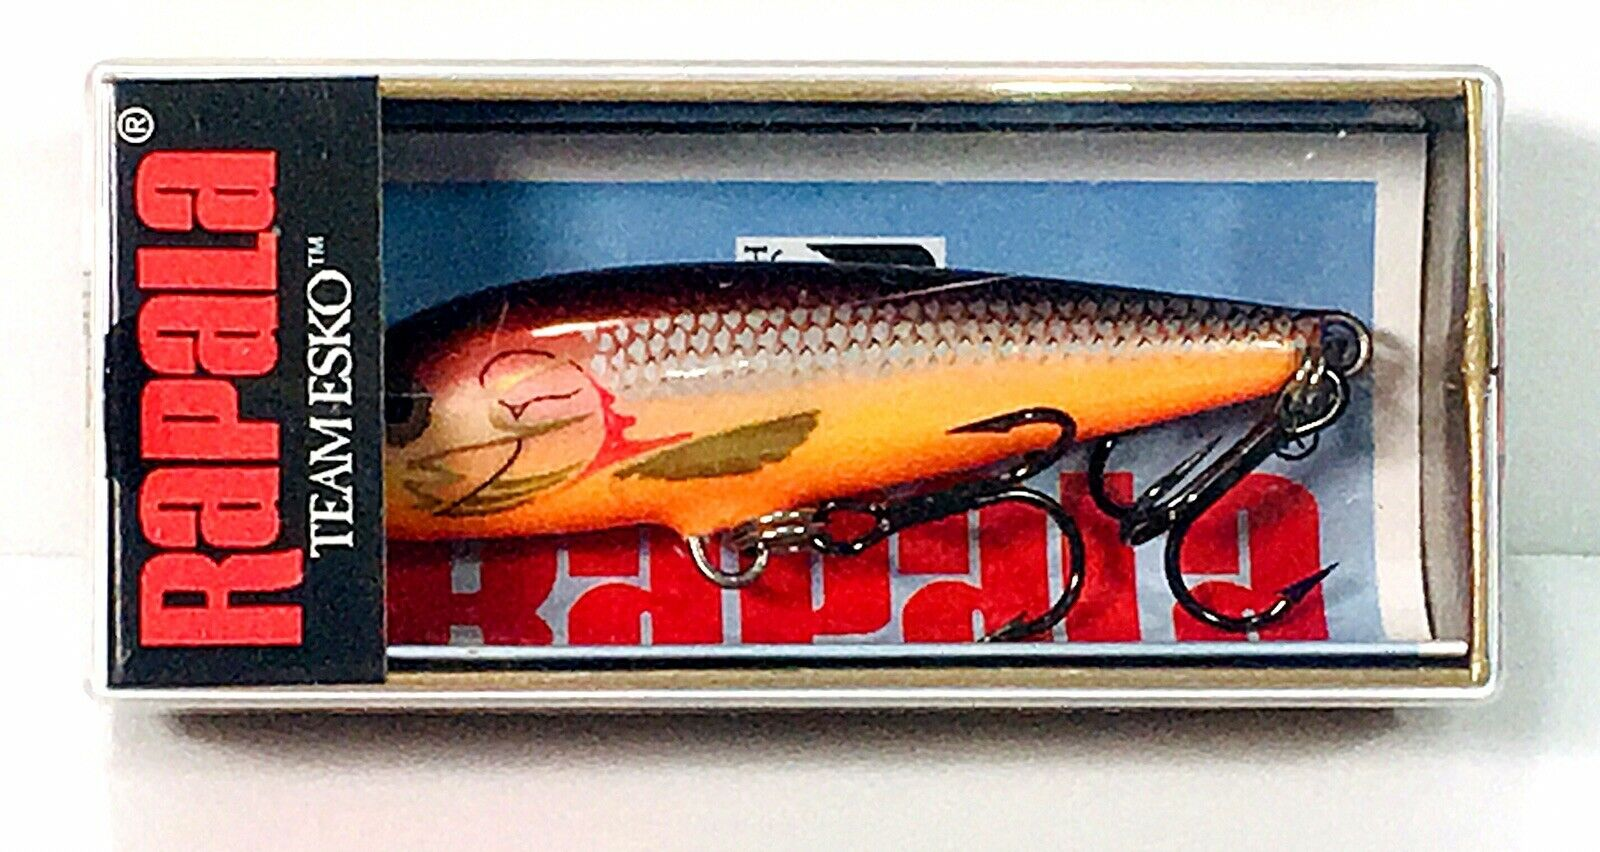 Rapala Team Esko TE-7 SRB Floating Flottant 7 cm (MADE IN FINLAND)  NEW